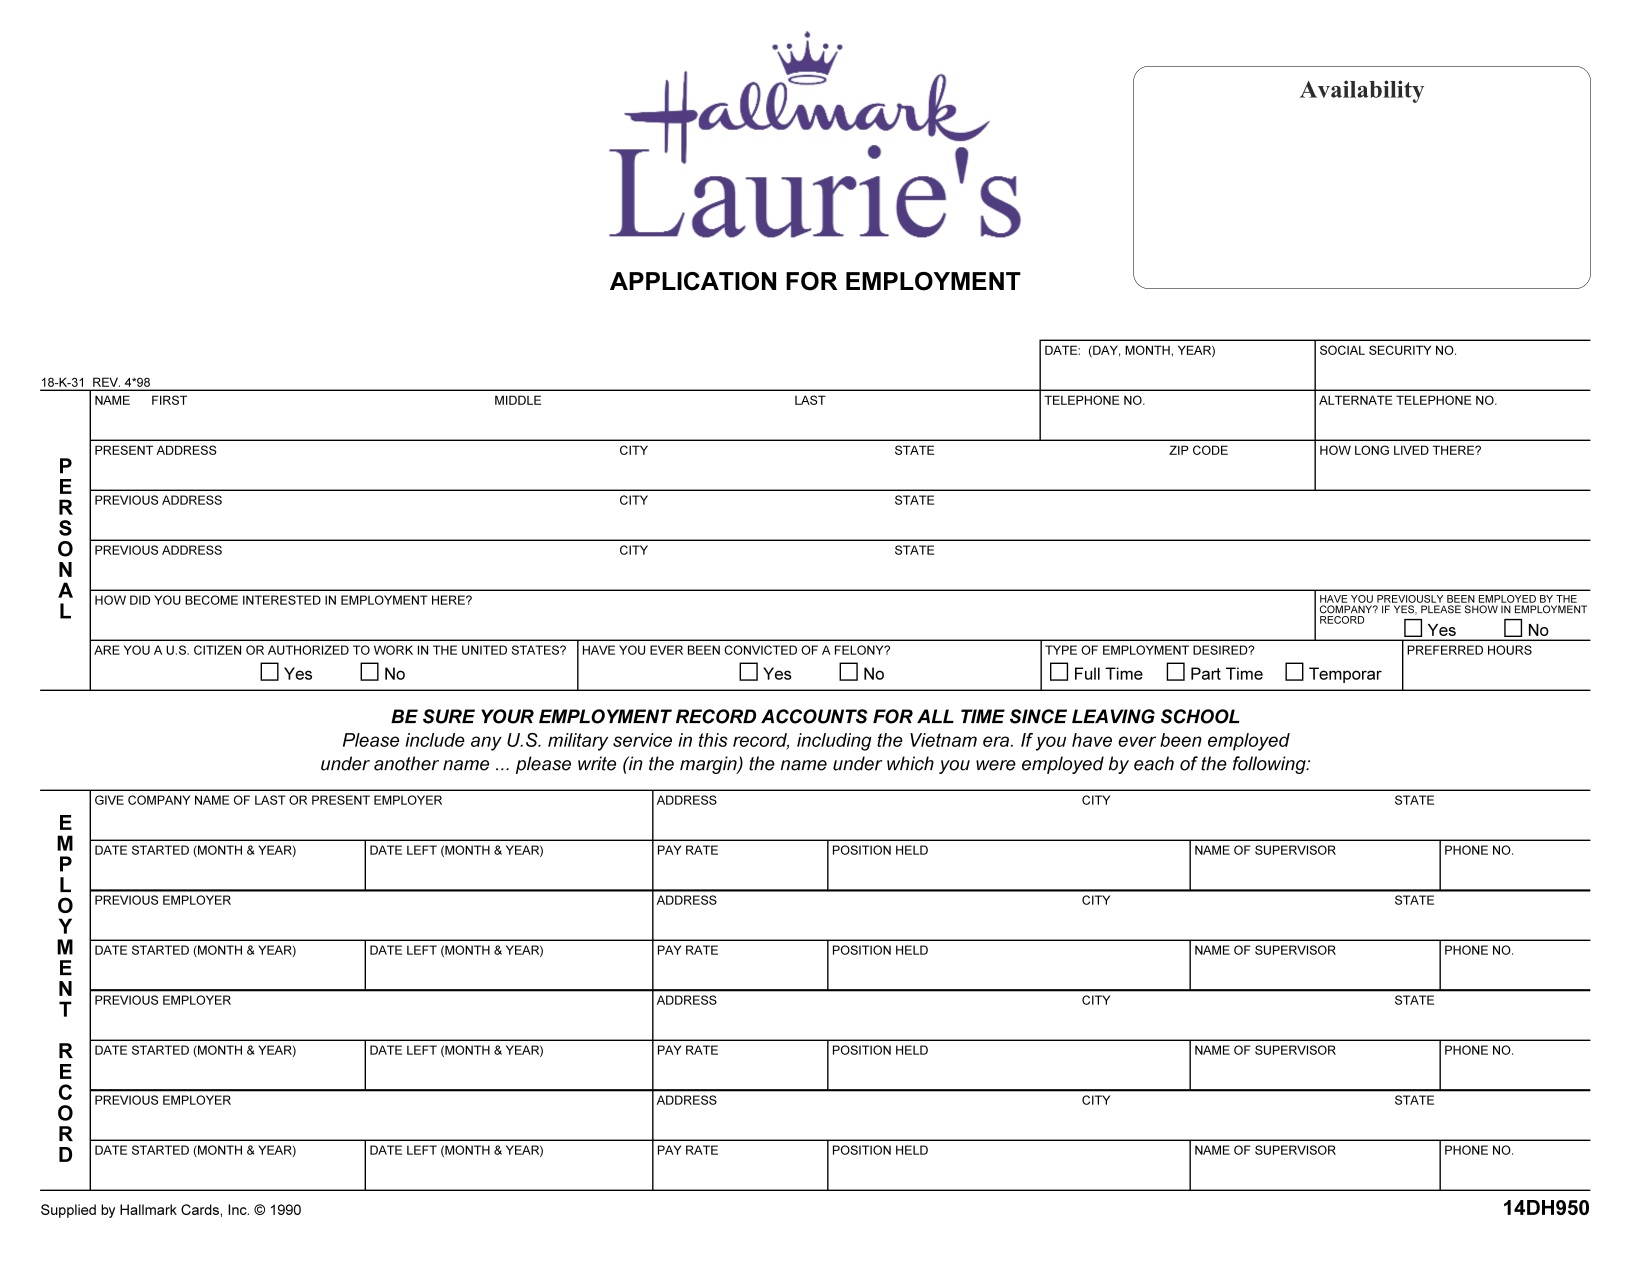 Laurie's Hallmark Employment Application